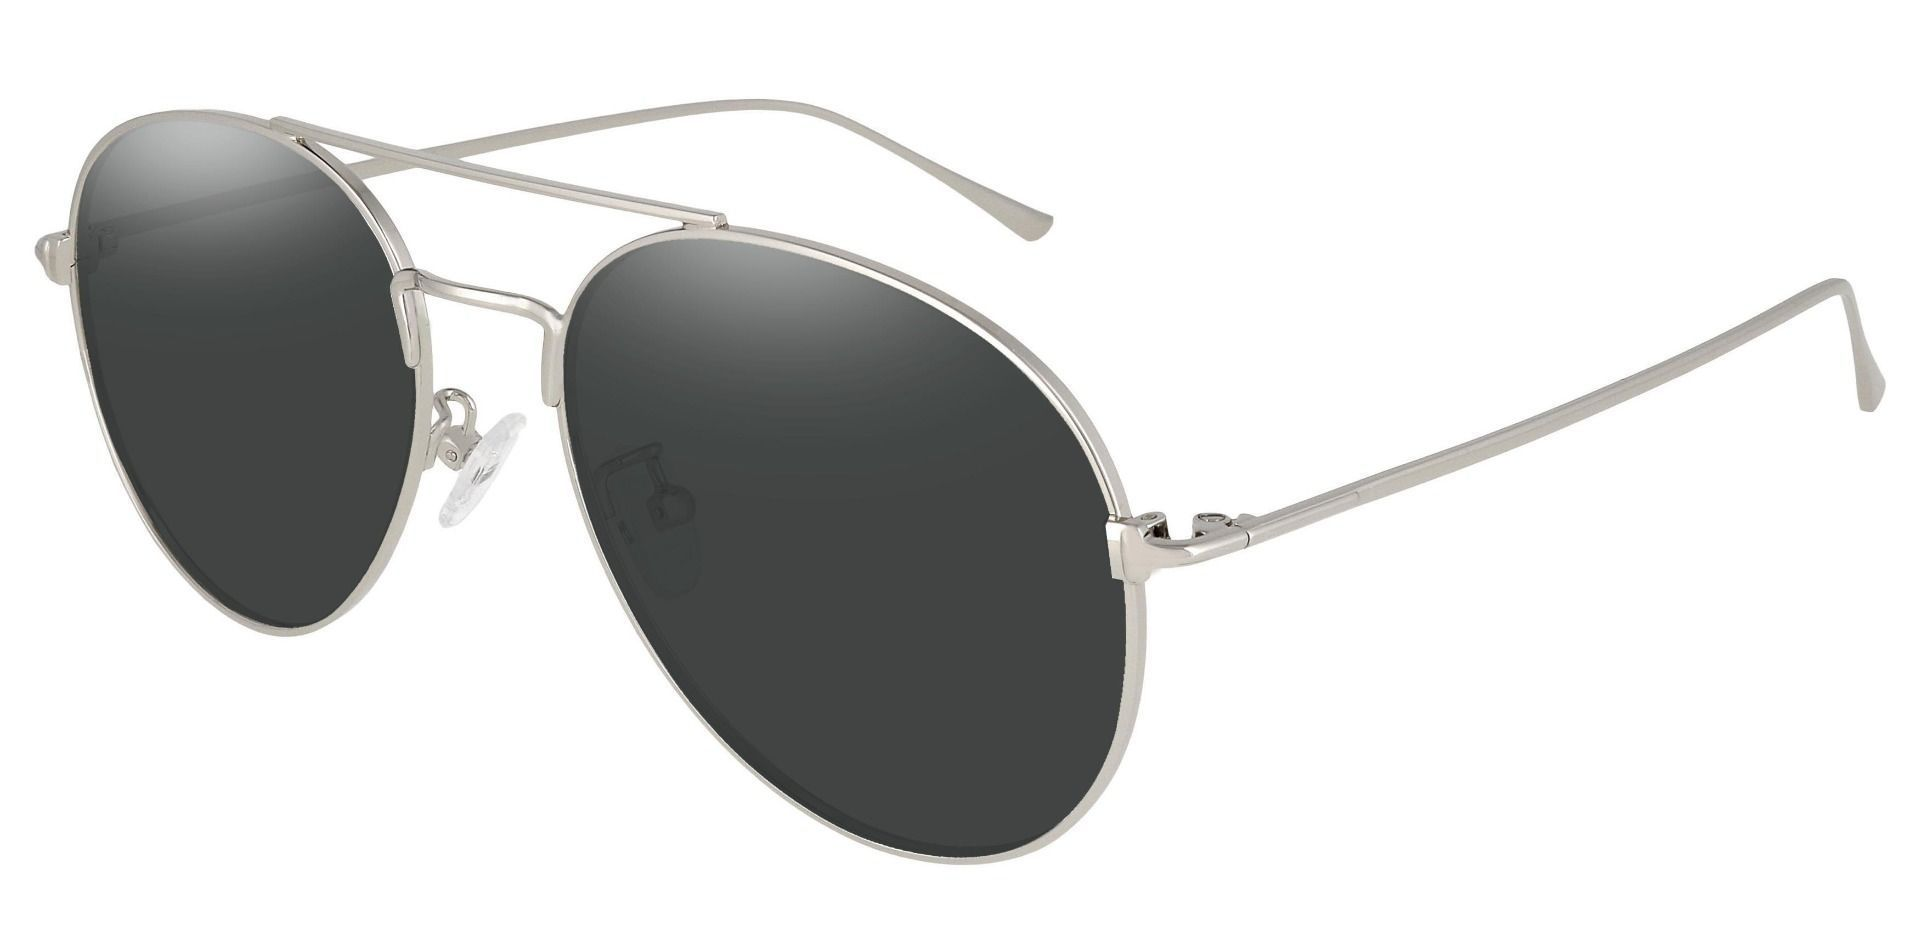 Canon Aviator Reading Sunglasses - Silver Frame With Gray Lenses